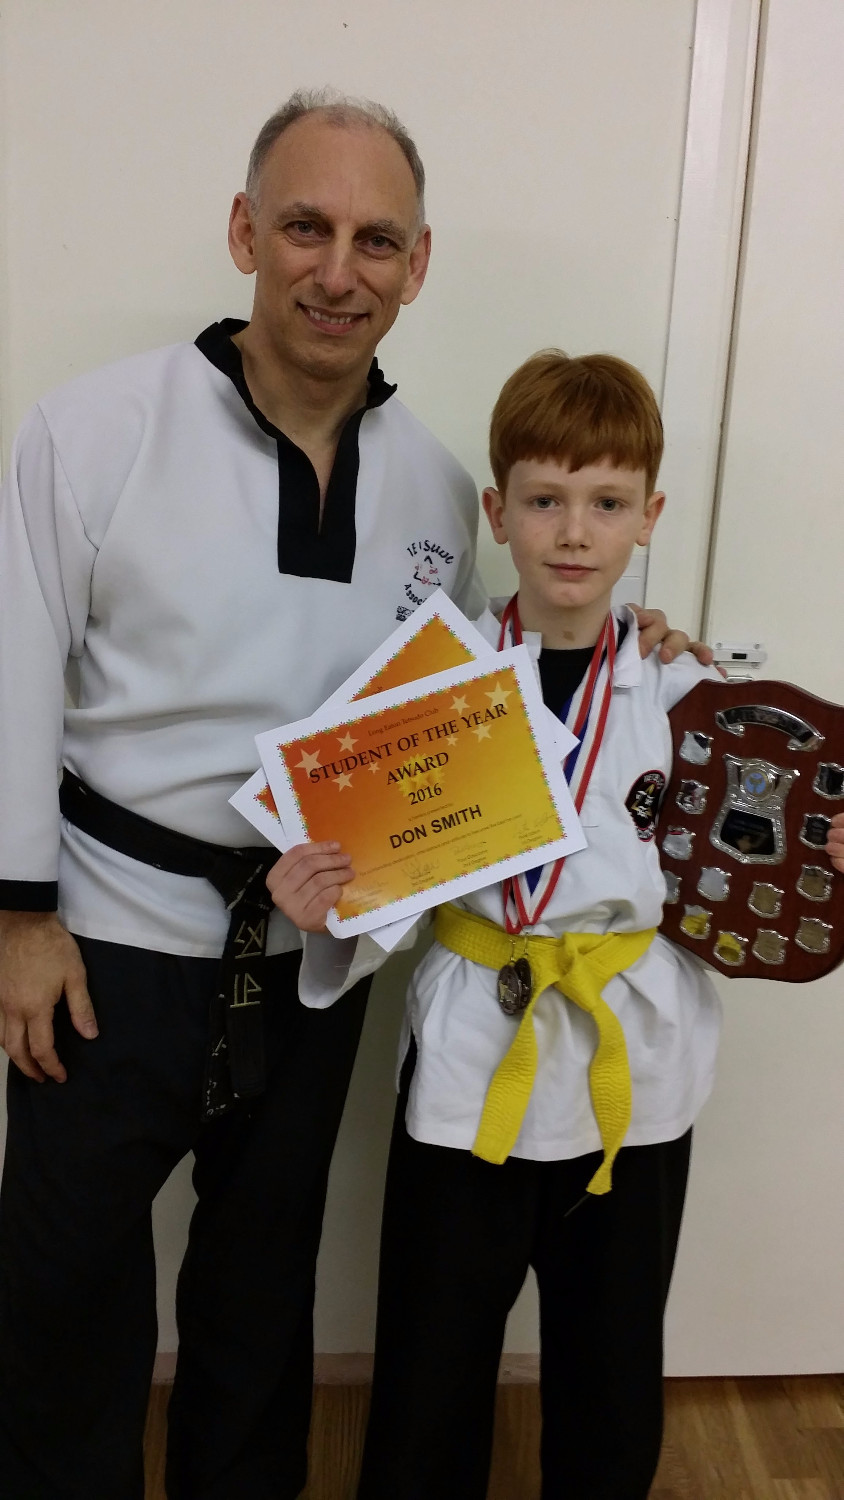 Don Smith Student of the Year with Instructor Paul Gascoyne